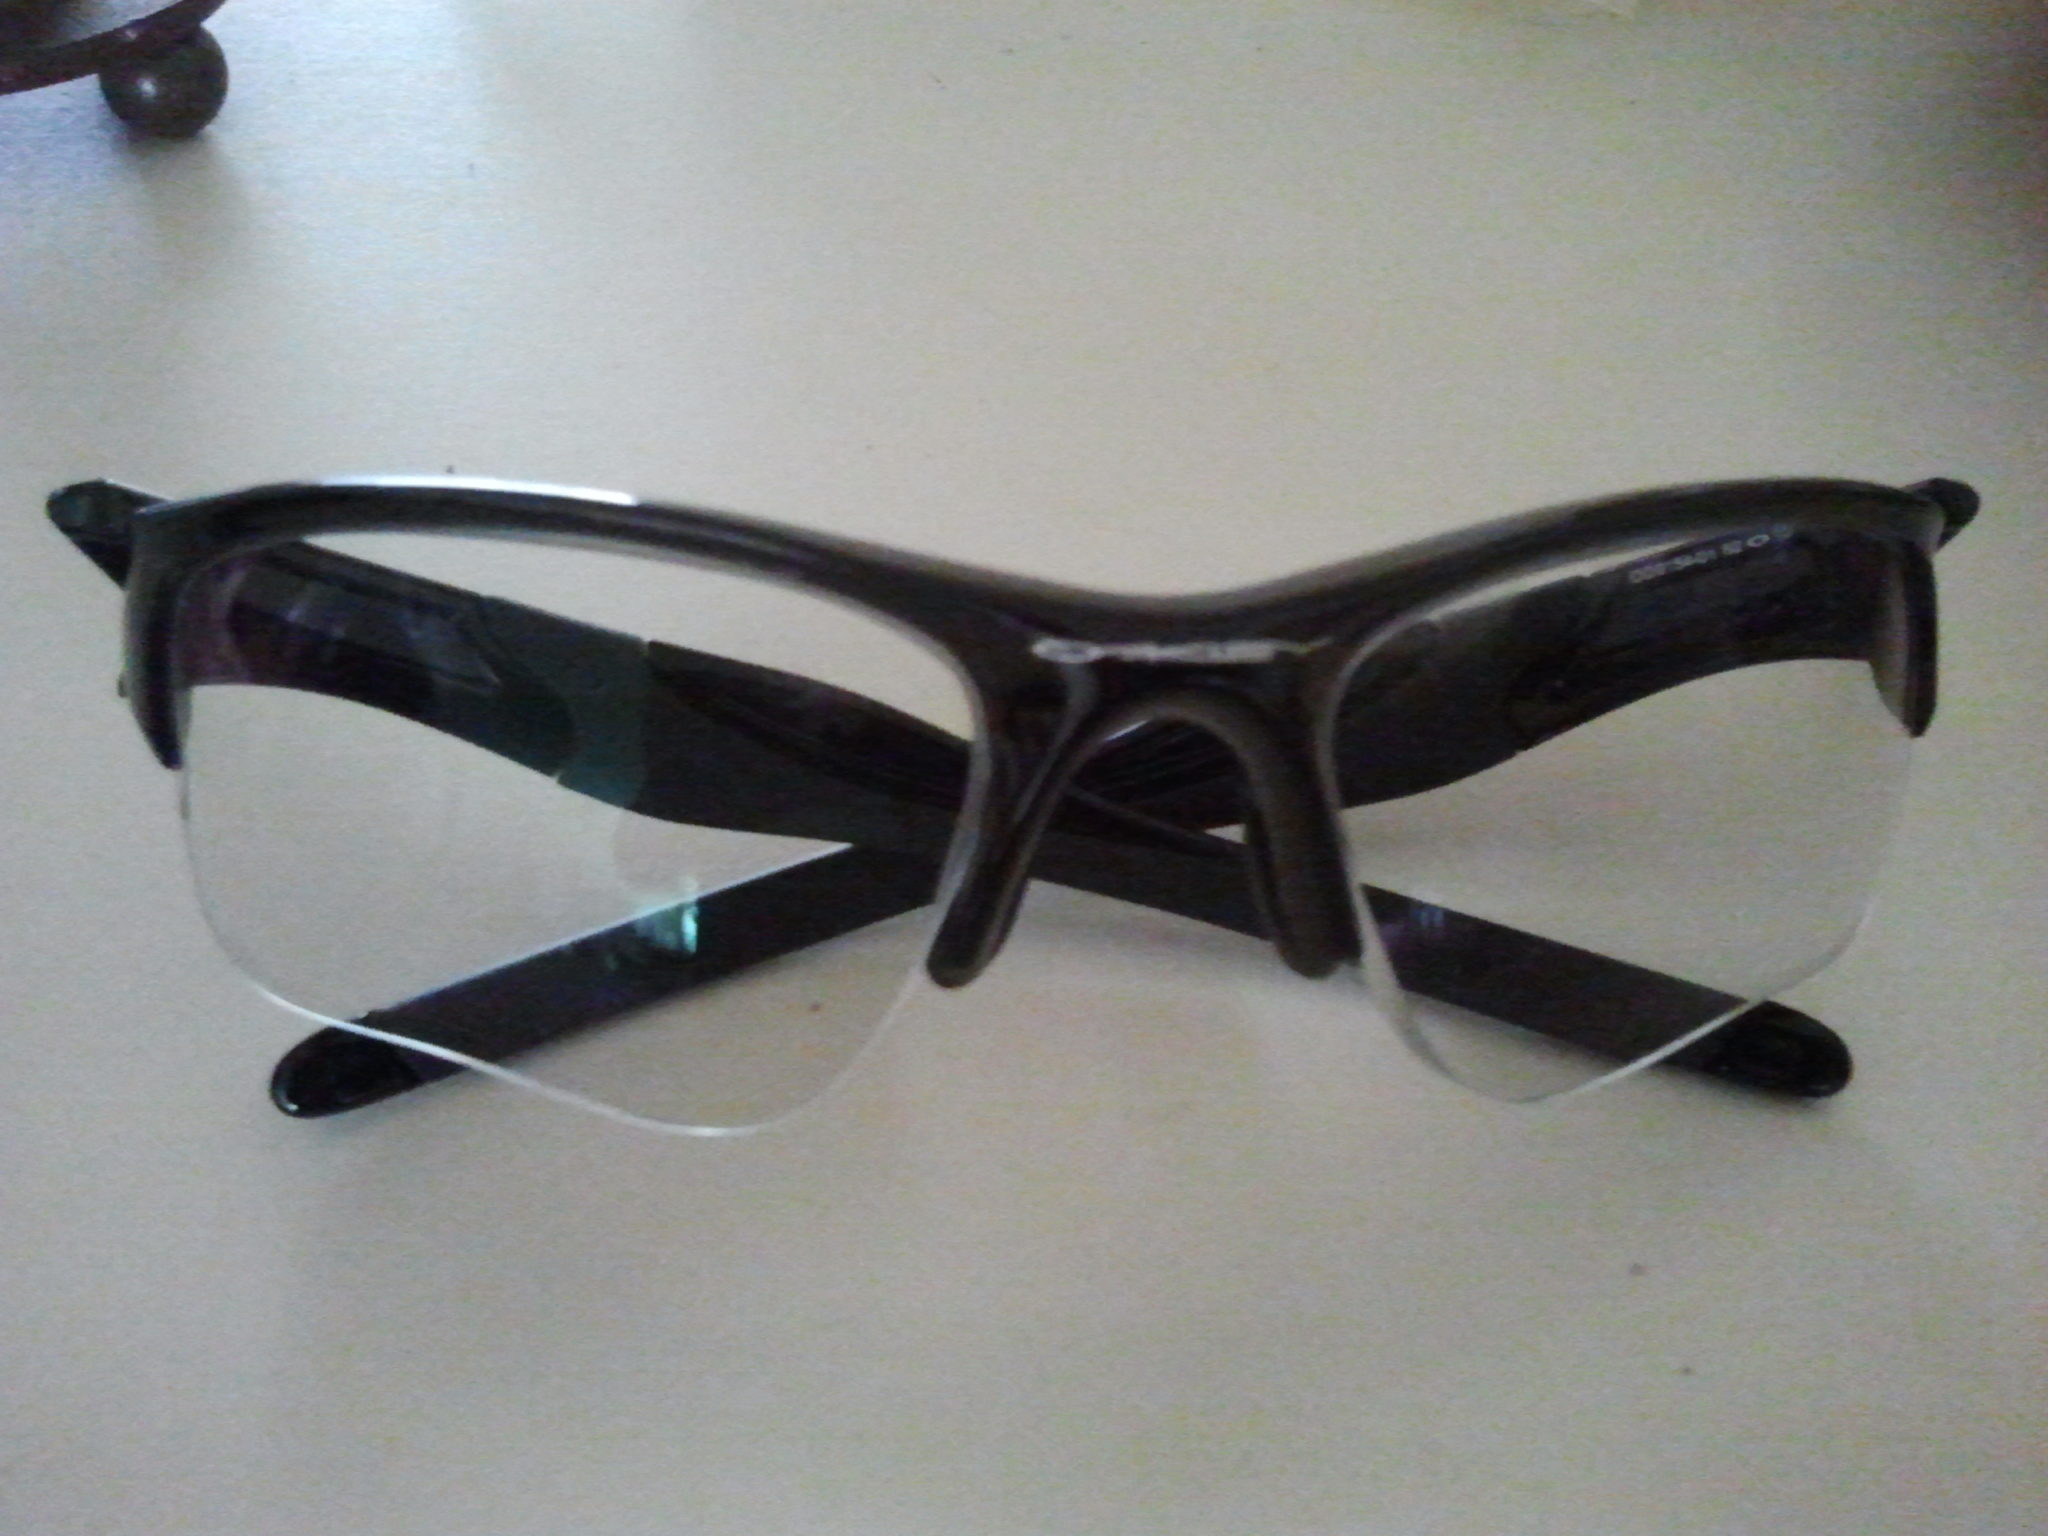 Review: Prescription riding glasses from Sport Rx great ...